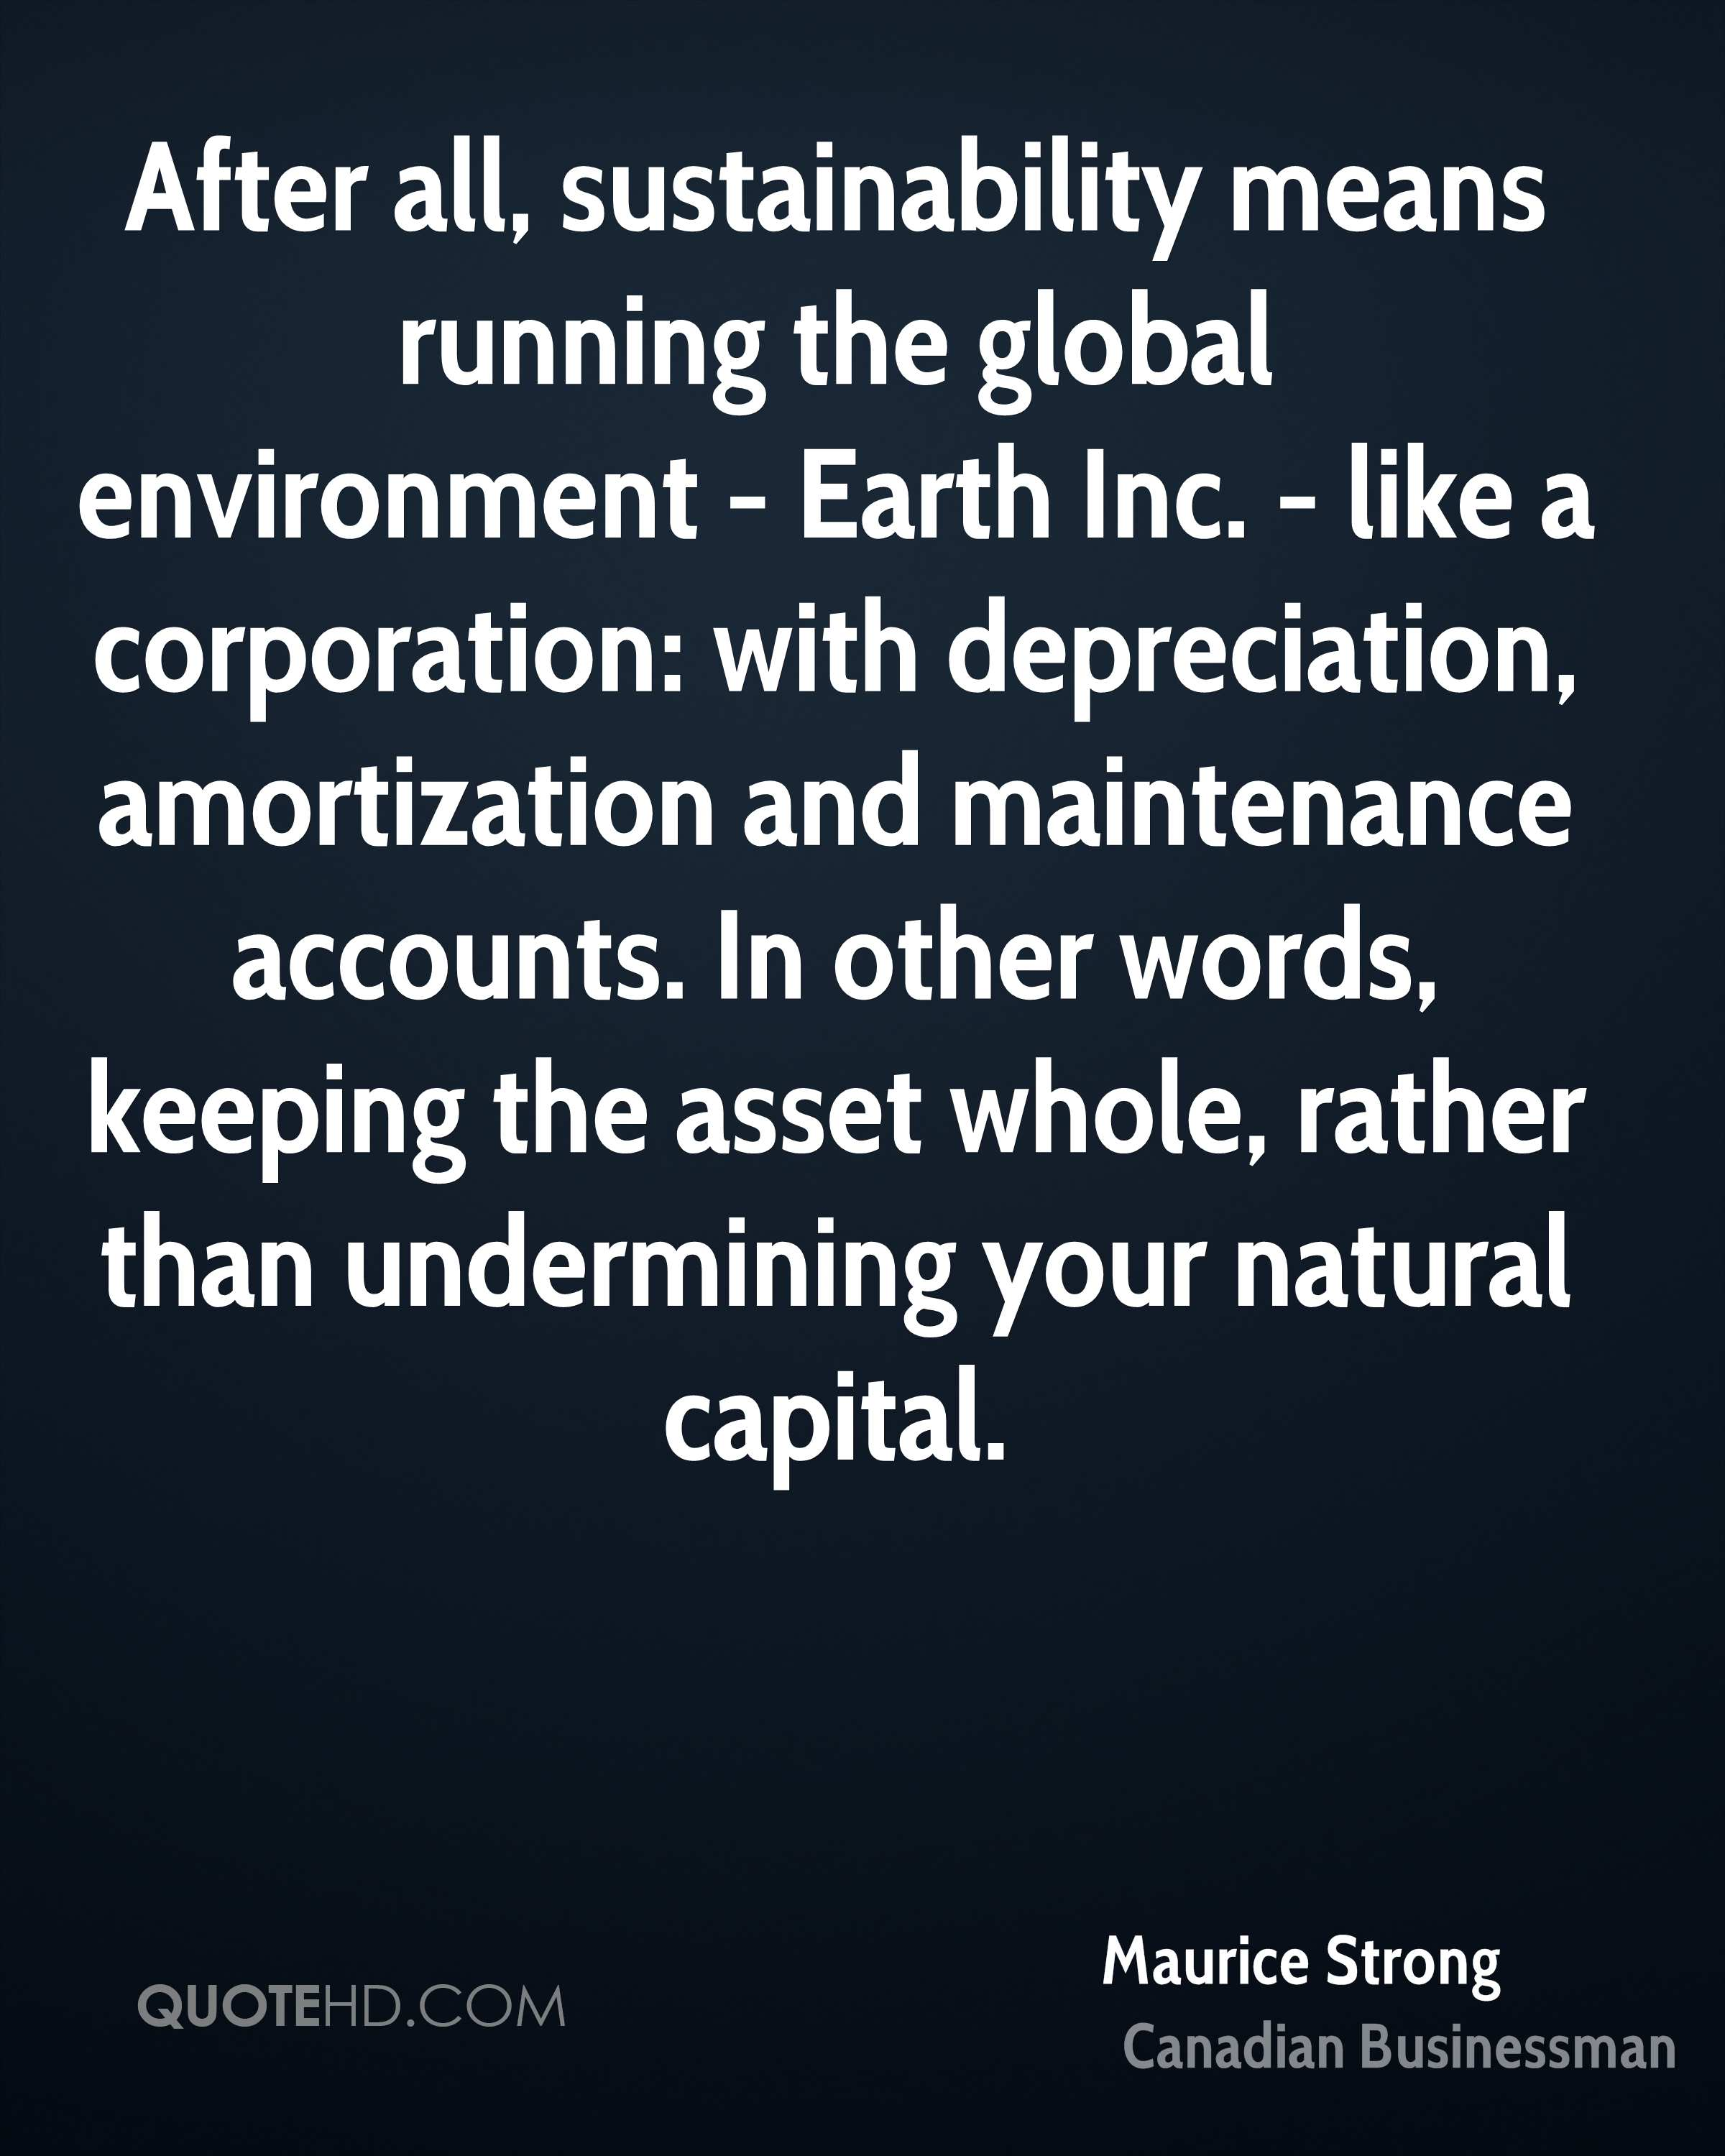 After all, sustainability means running the global environment - Earth Inc. - like a corporation: with depreciation, amortization and maintenance accounts. In other words, keeping the asset whole, rather than undermining your natural capital.